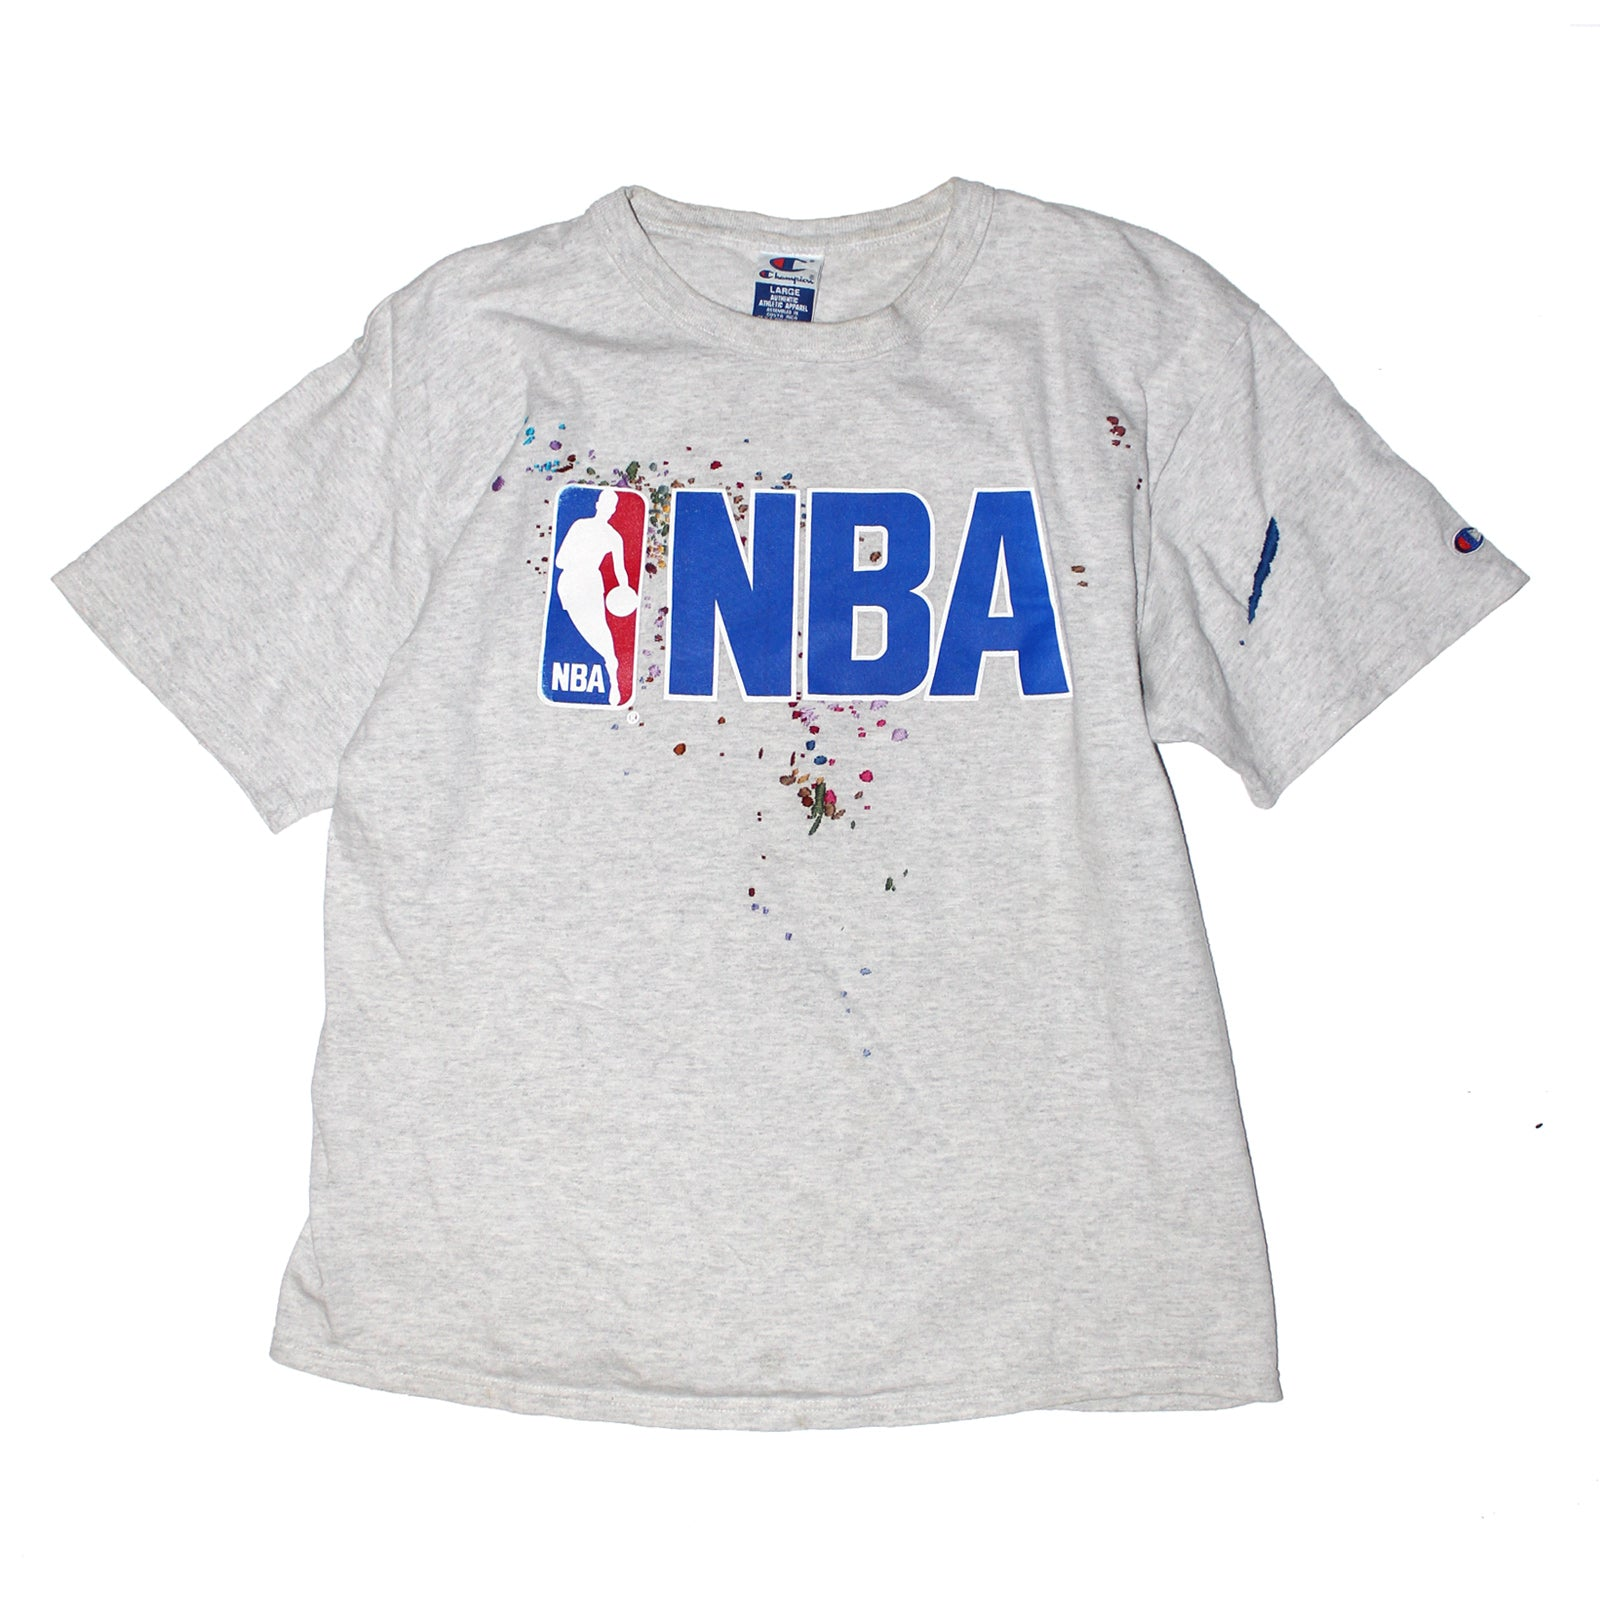 "BANDULU ""NBA OFFICIAL"" VINTAGE CHAMPION TEE"